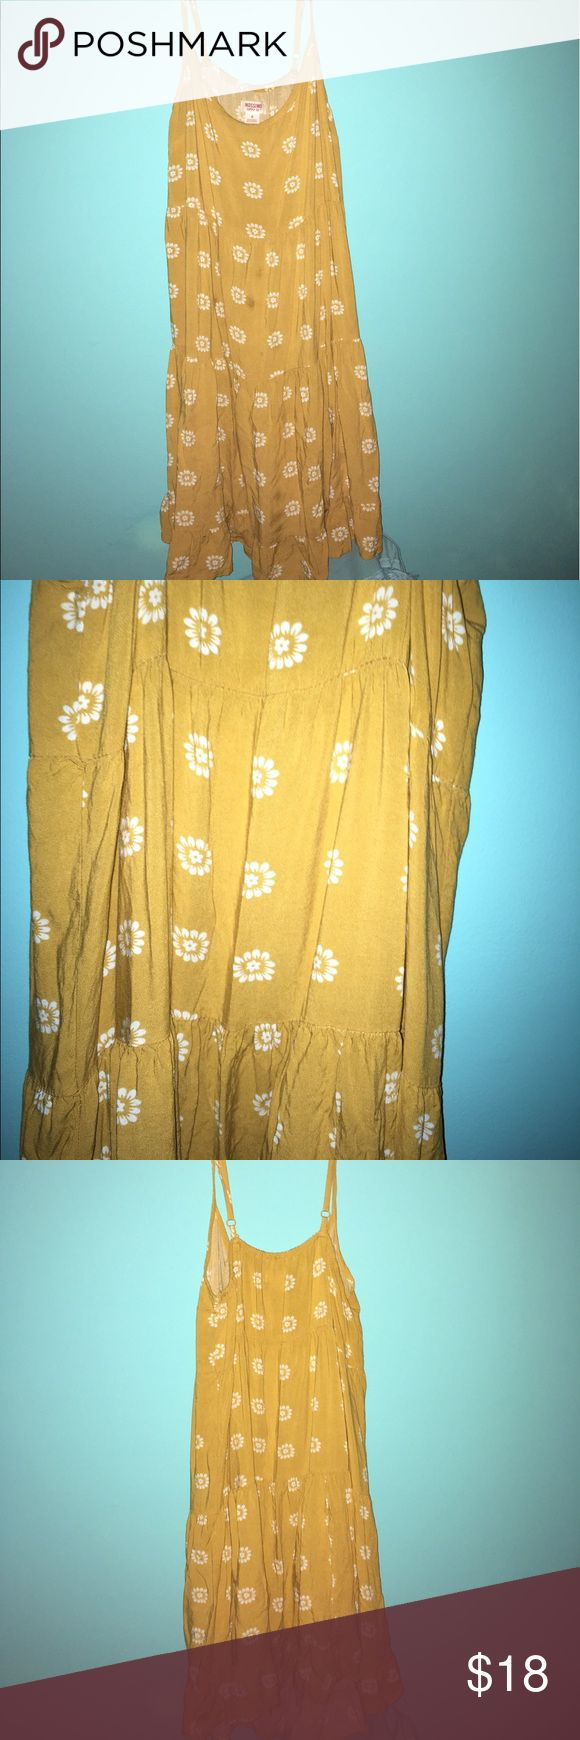 Yellow flowery dress This casual sun dress is one of my favorites! With a beautiful yellow color and flowery pattern, this makes a perfect outfit! Dresses